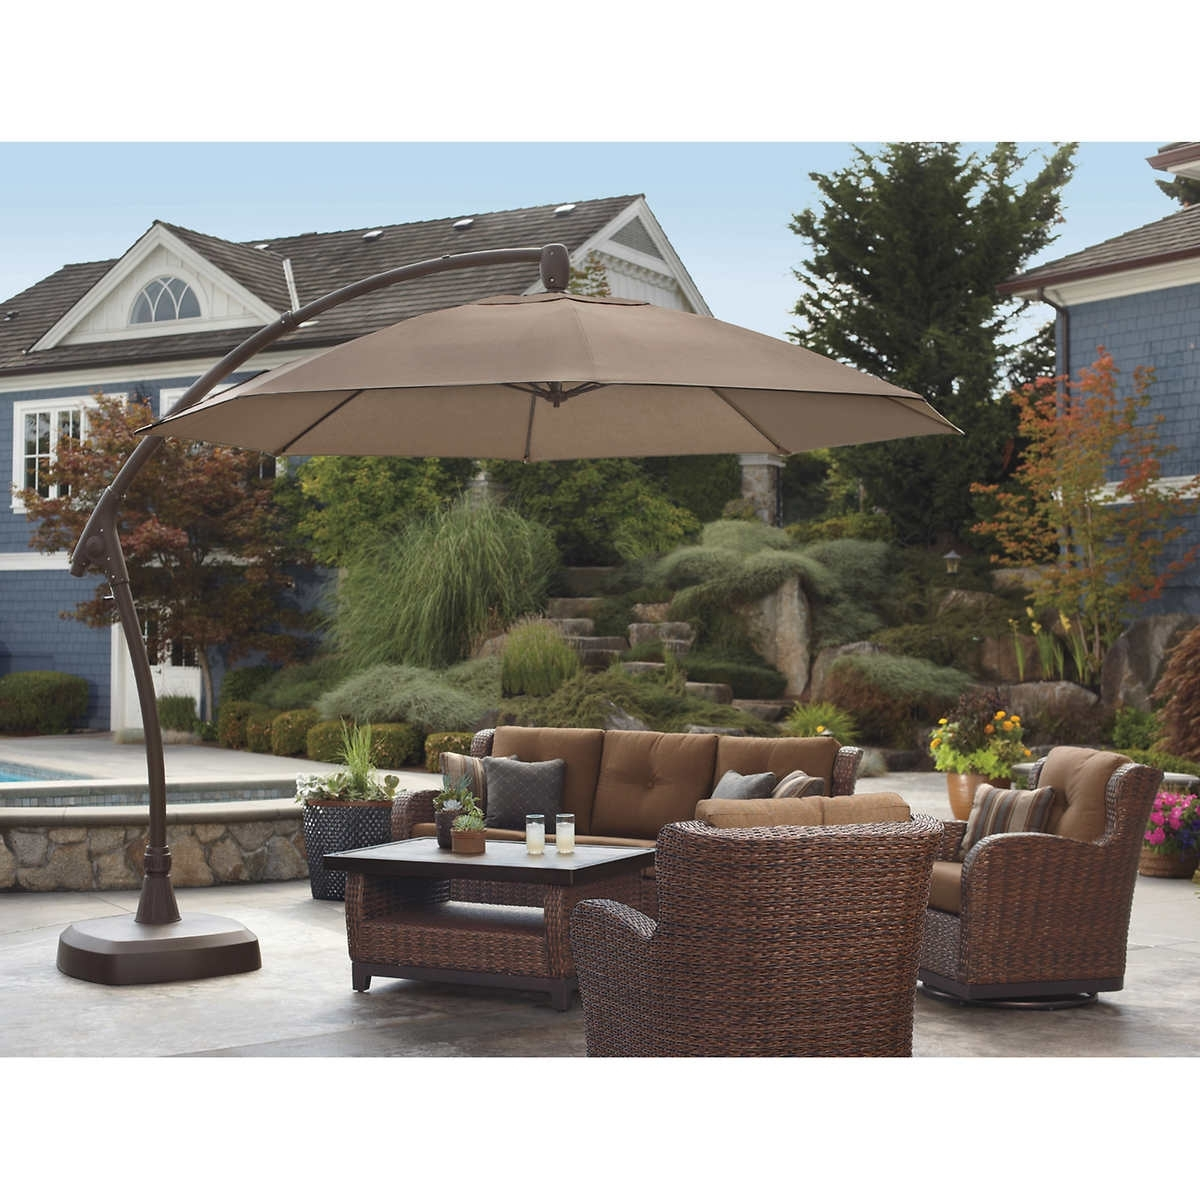 Popular Patio Umbrellas At Costco Canada – Patio Ideas Inside Sunbrella Patio Umbrellas At Costco (View 9 of 20)